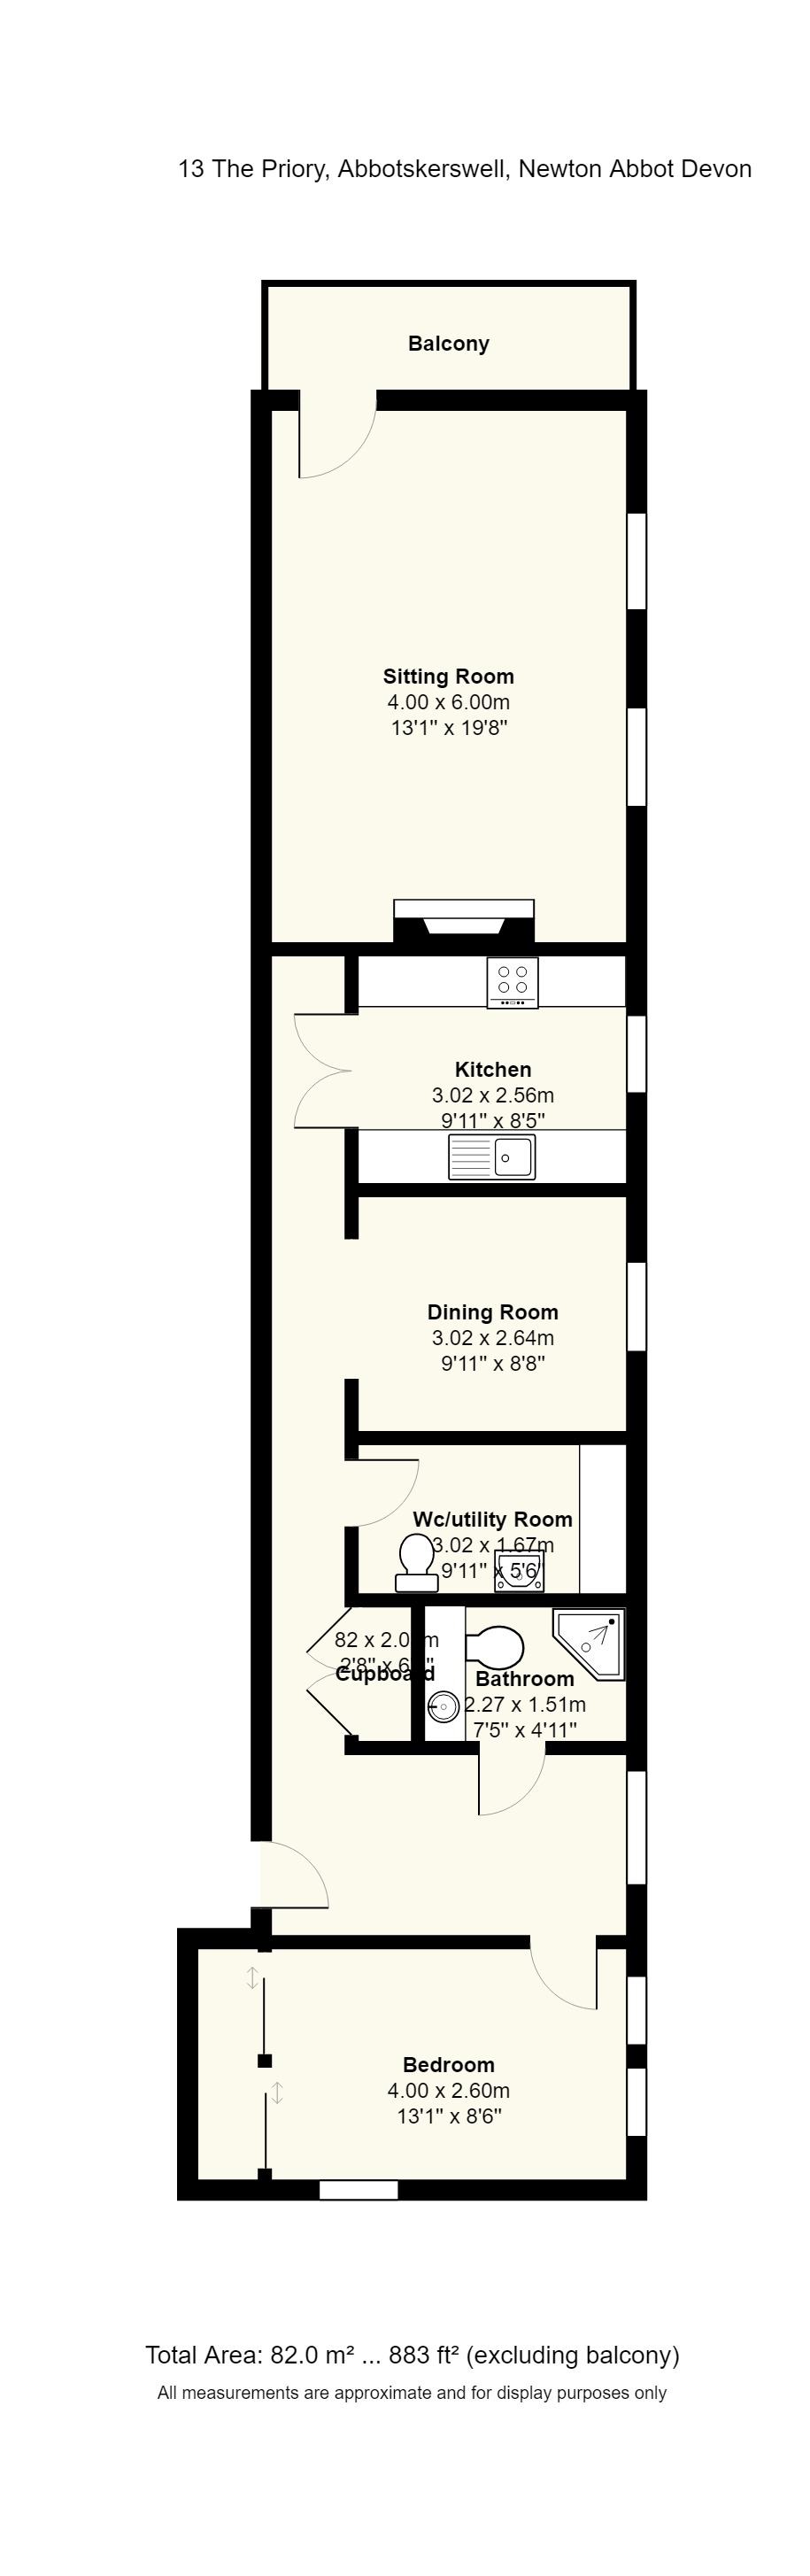 13 The Priory Floorplan